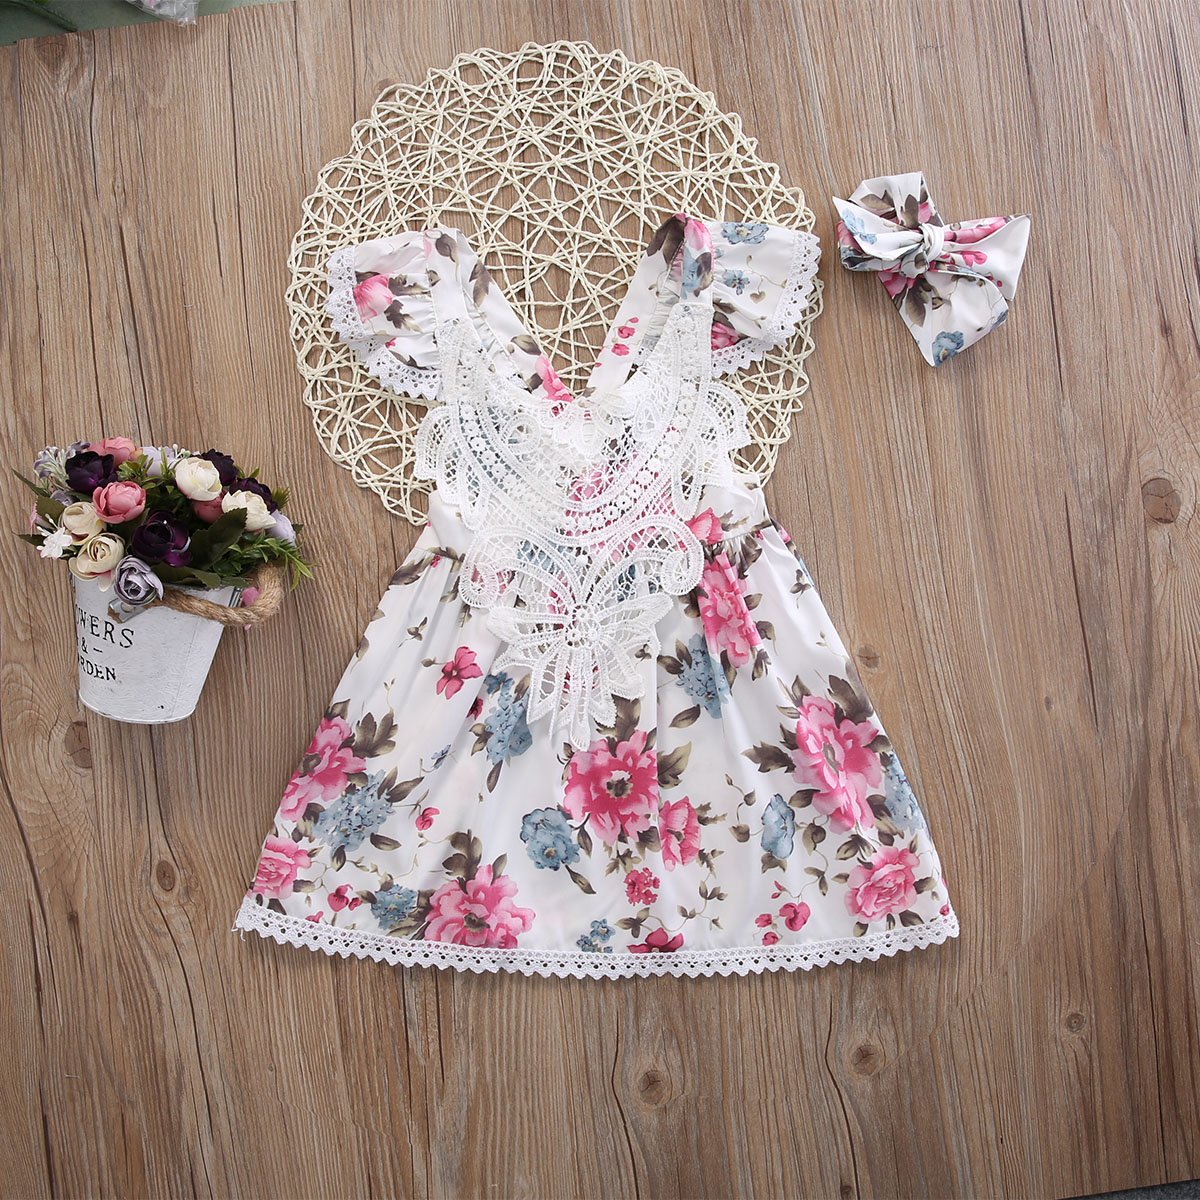 3colors Summer Toddler Kids Baby Girl Flower Floral Dress Princess Lace Dresses Clothes3colors Summer Toddler Kids Baby Girl Flower Floral Dress Princess Lace Dresses Clothes